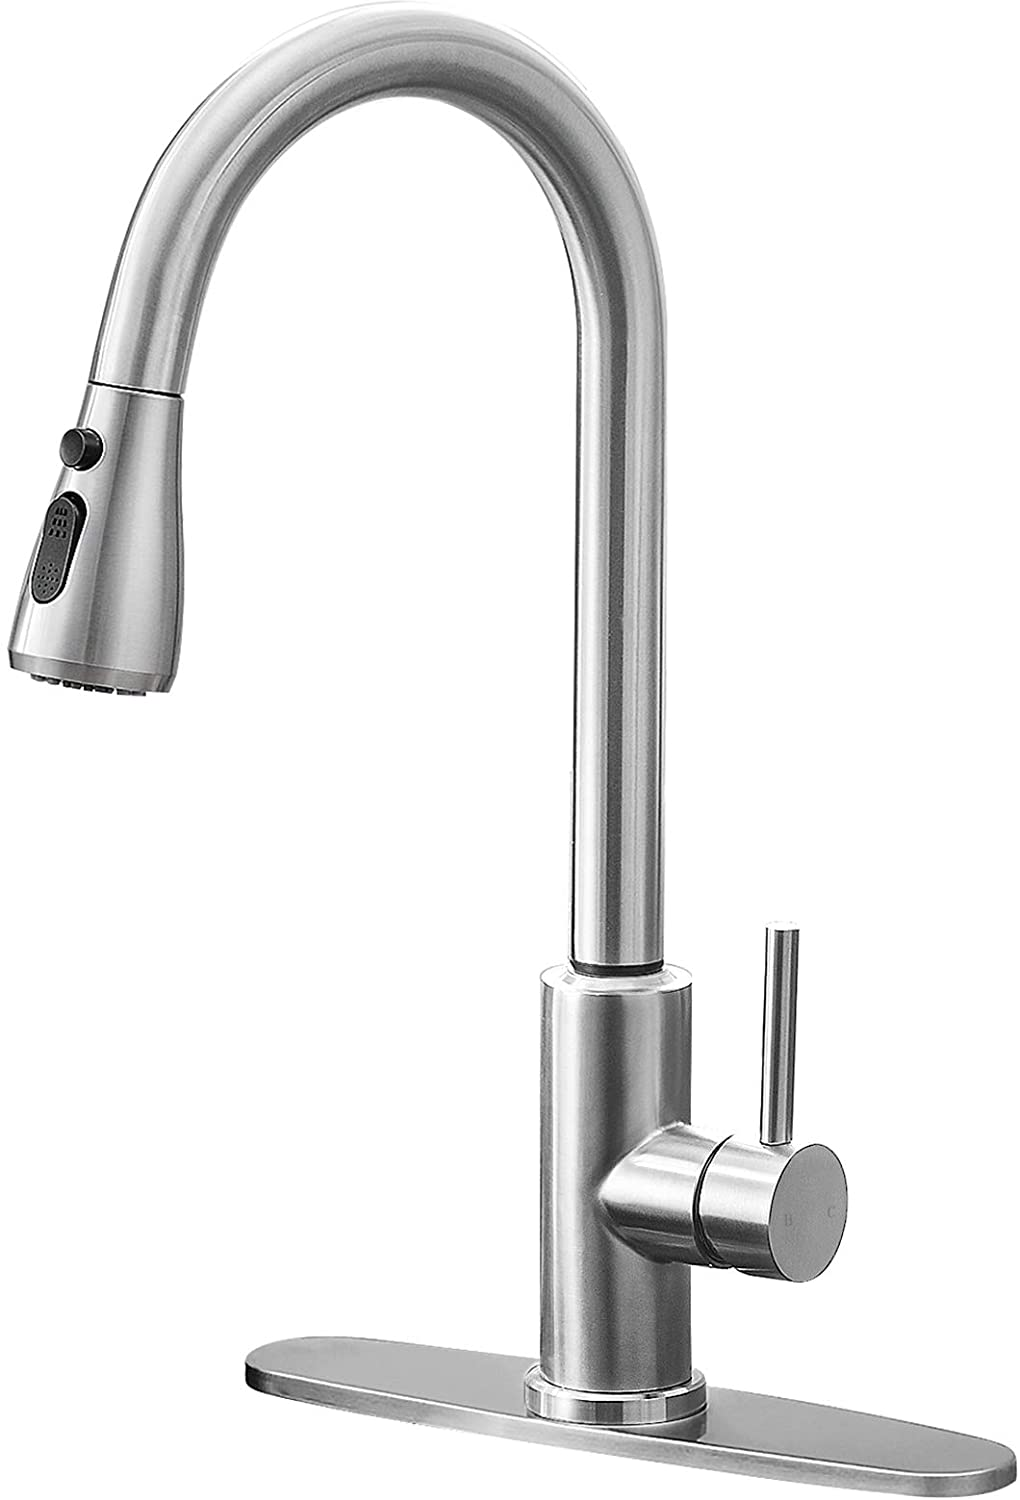 Qomolangma Kitchen Faucet with Pull Down Sprayer, Single Level Stainless Steel Kitchen Sink Faucets, Single Handle High Arc Brushed Nickel Pull Out Kitchen Faucet